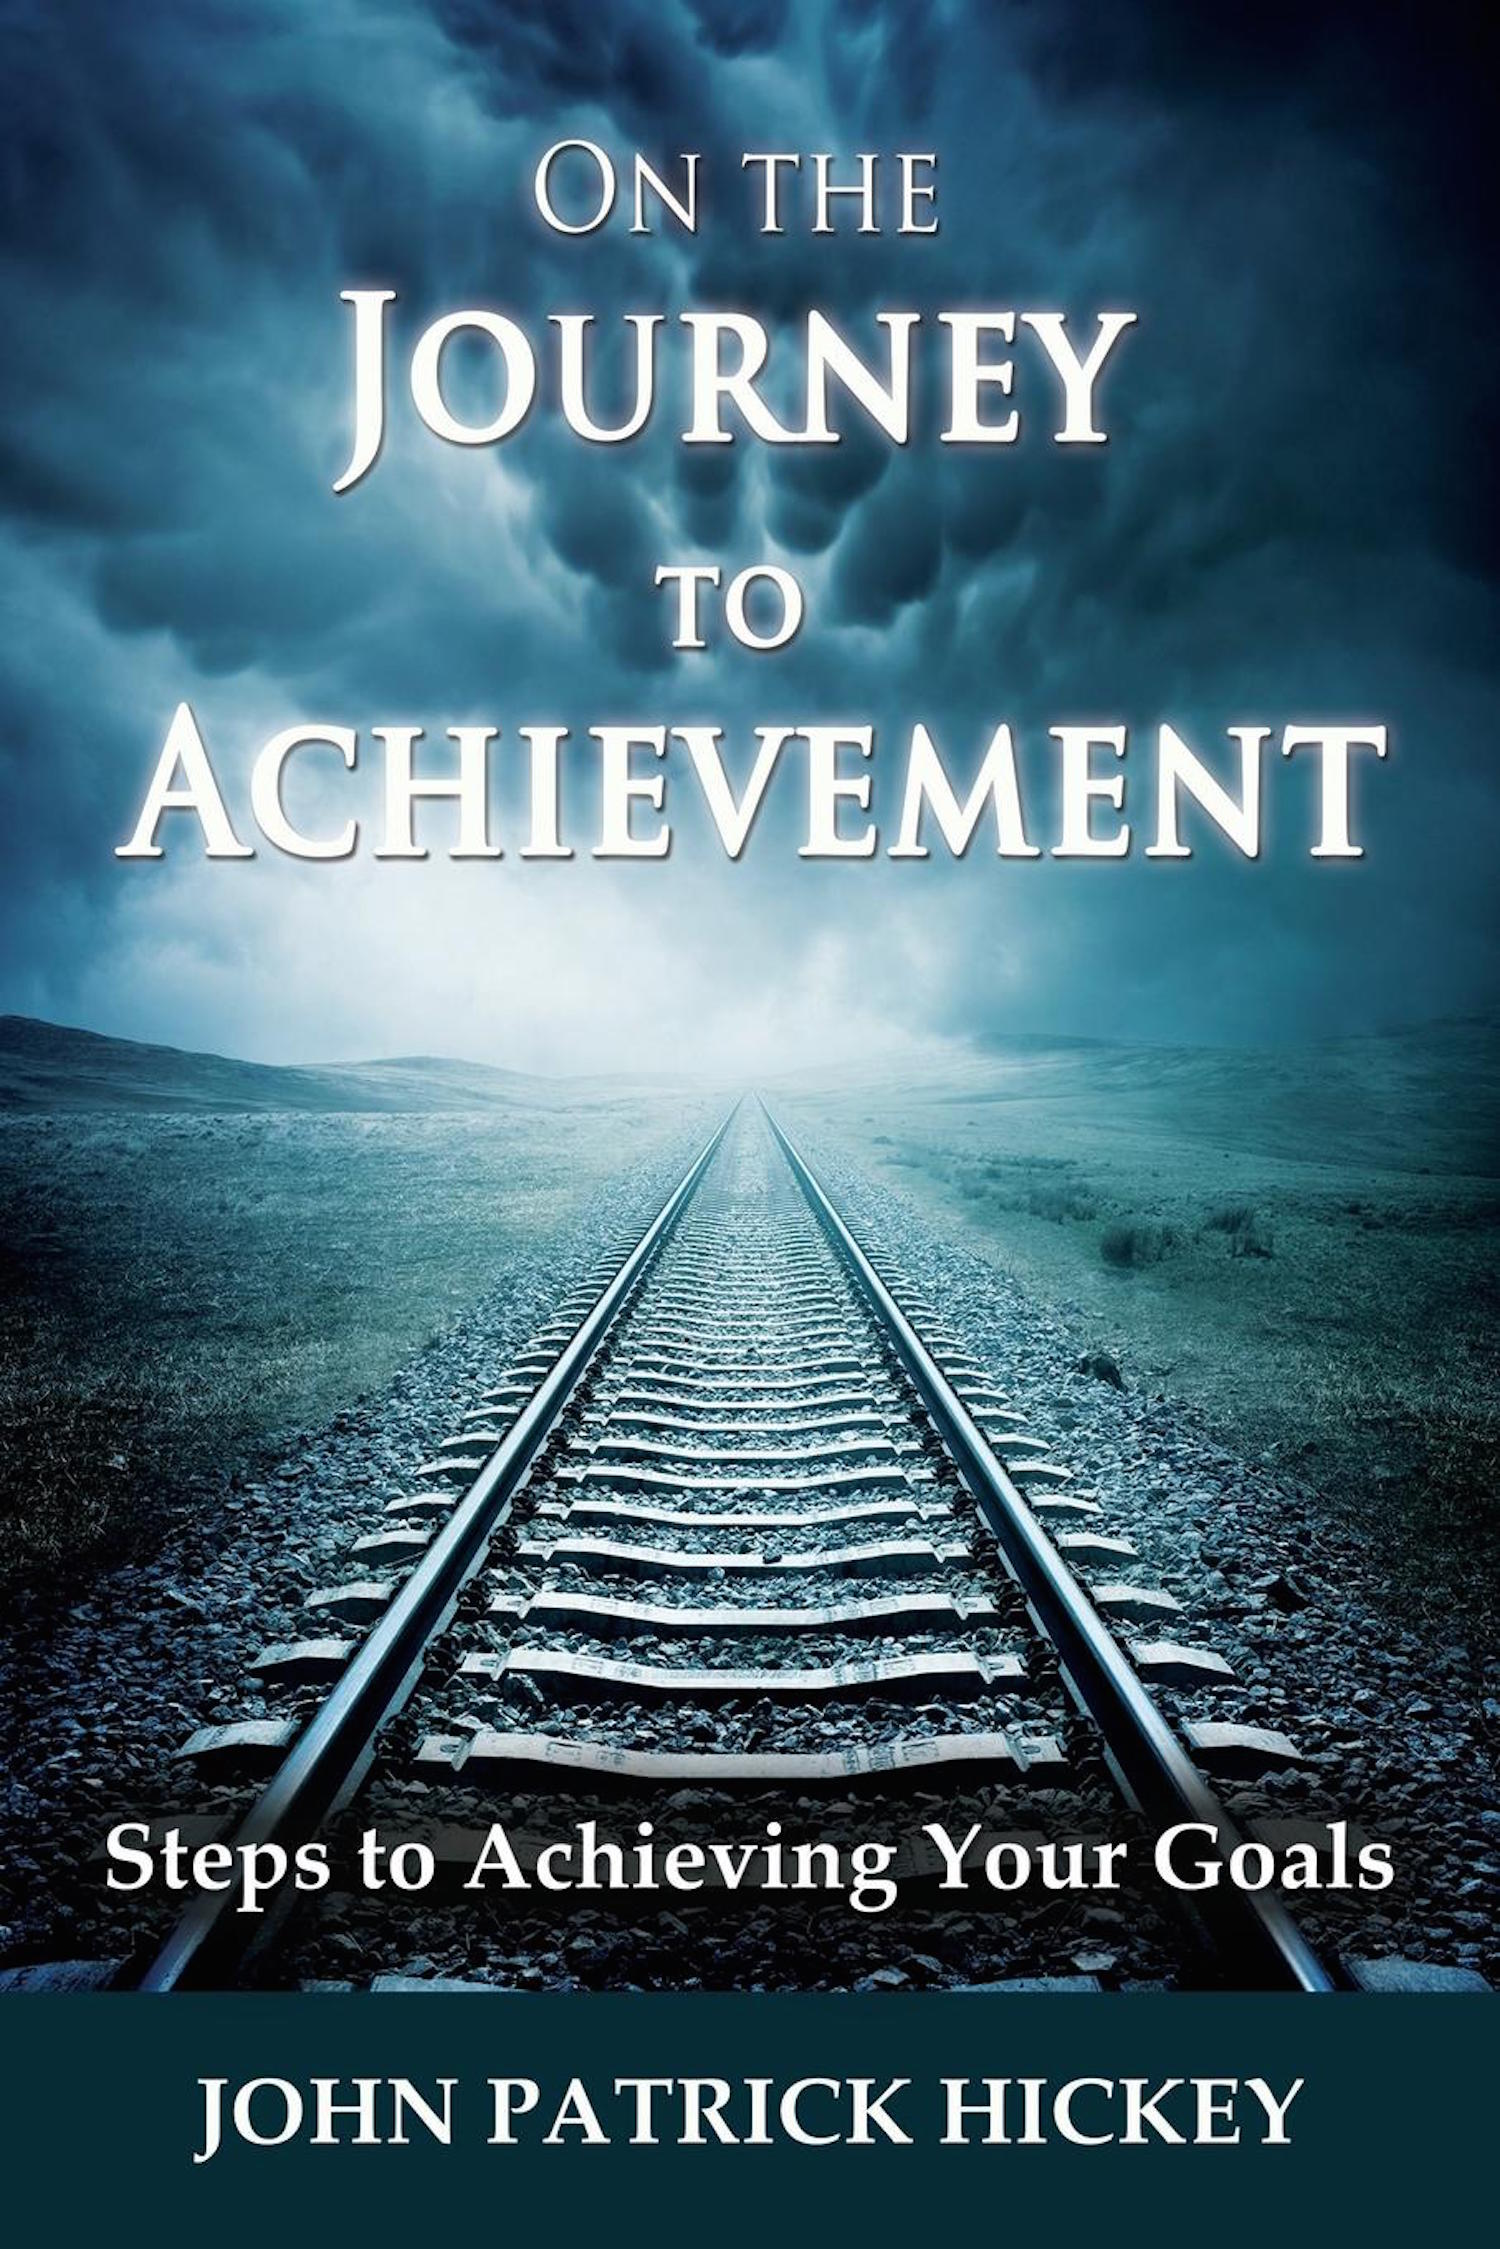 On The Journey To Achievement